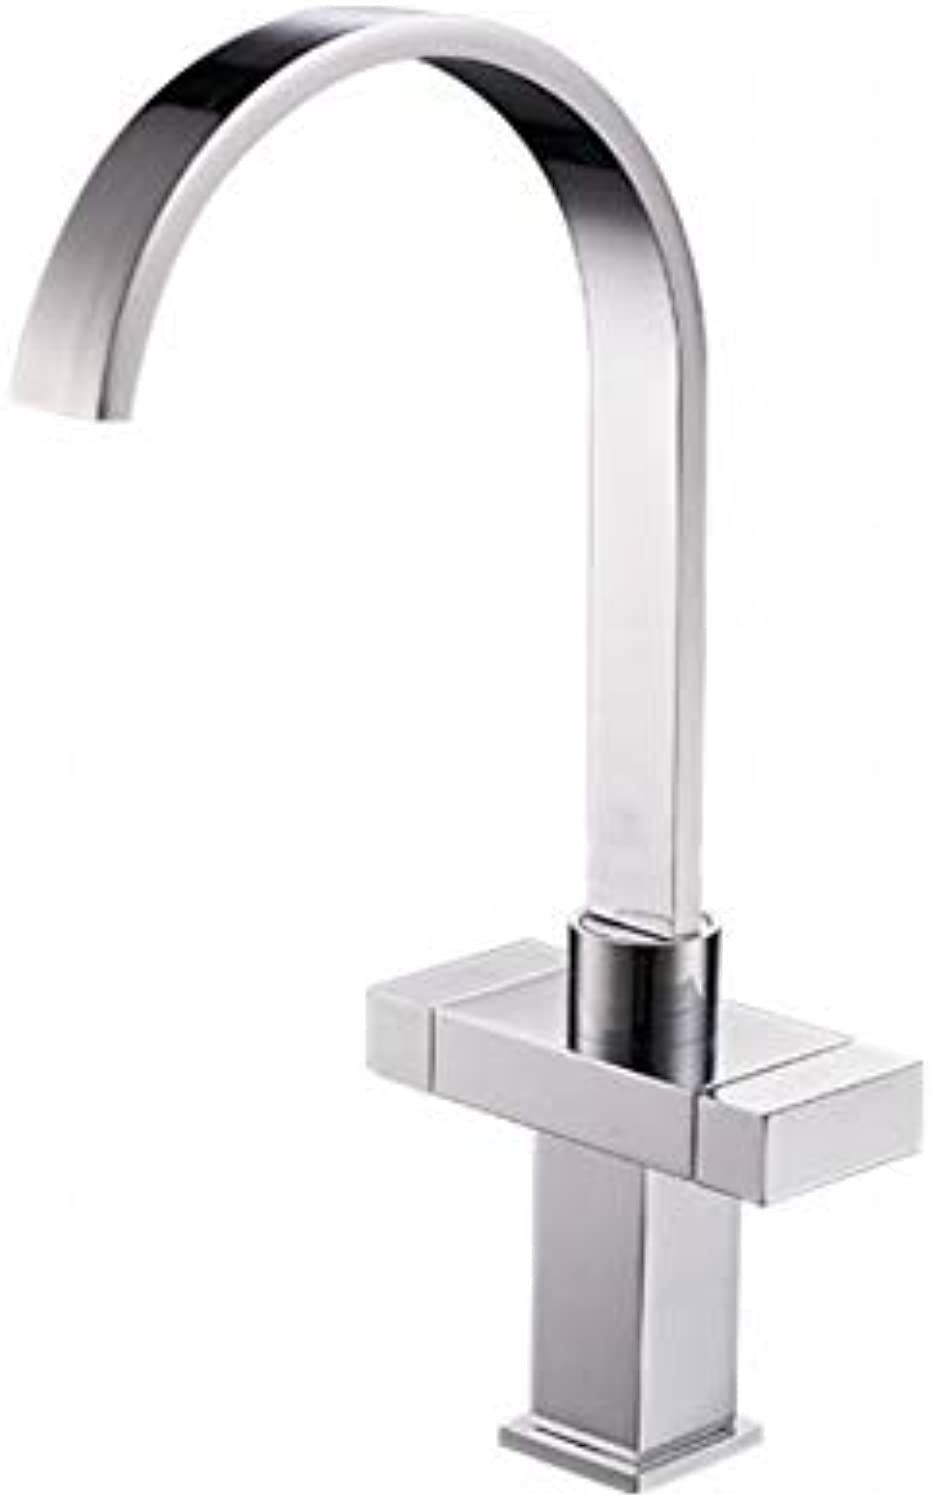 Bathroom Sink Basin Lever Mixer Tap Copper Kitchen Faucet Square Double Kitchen Hot and Cold Water Faucet